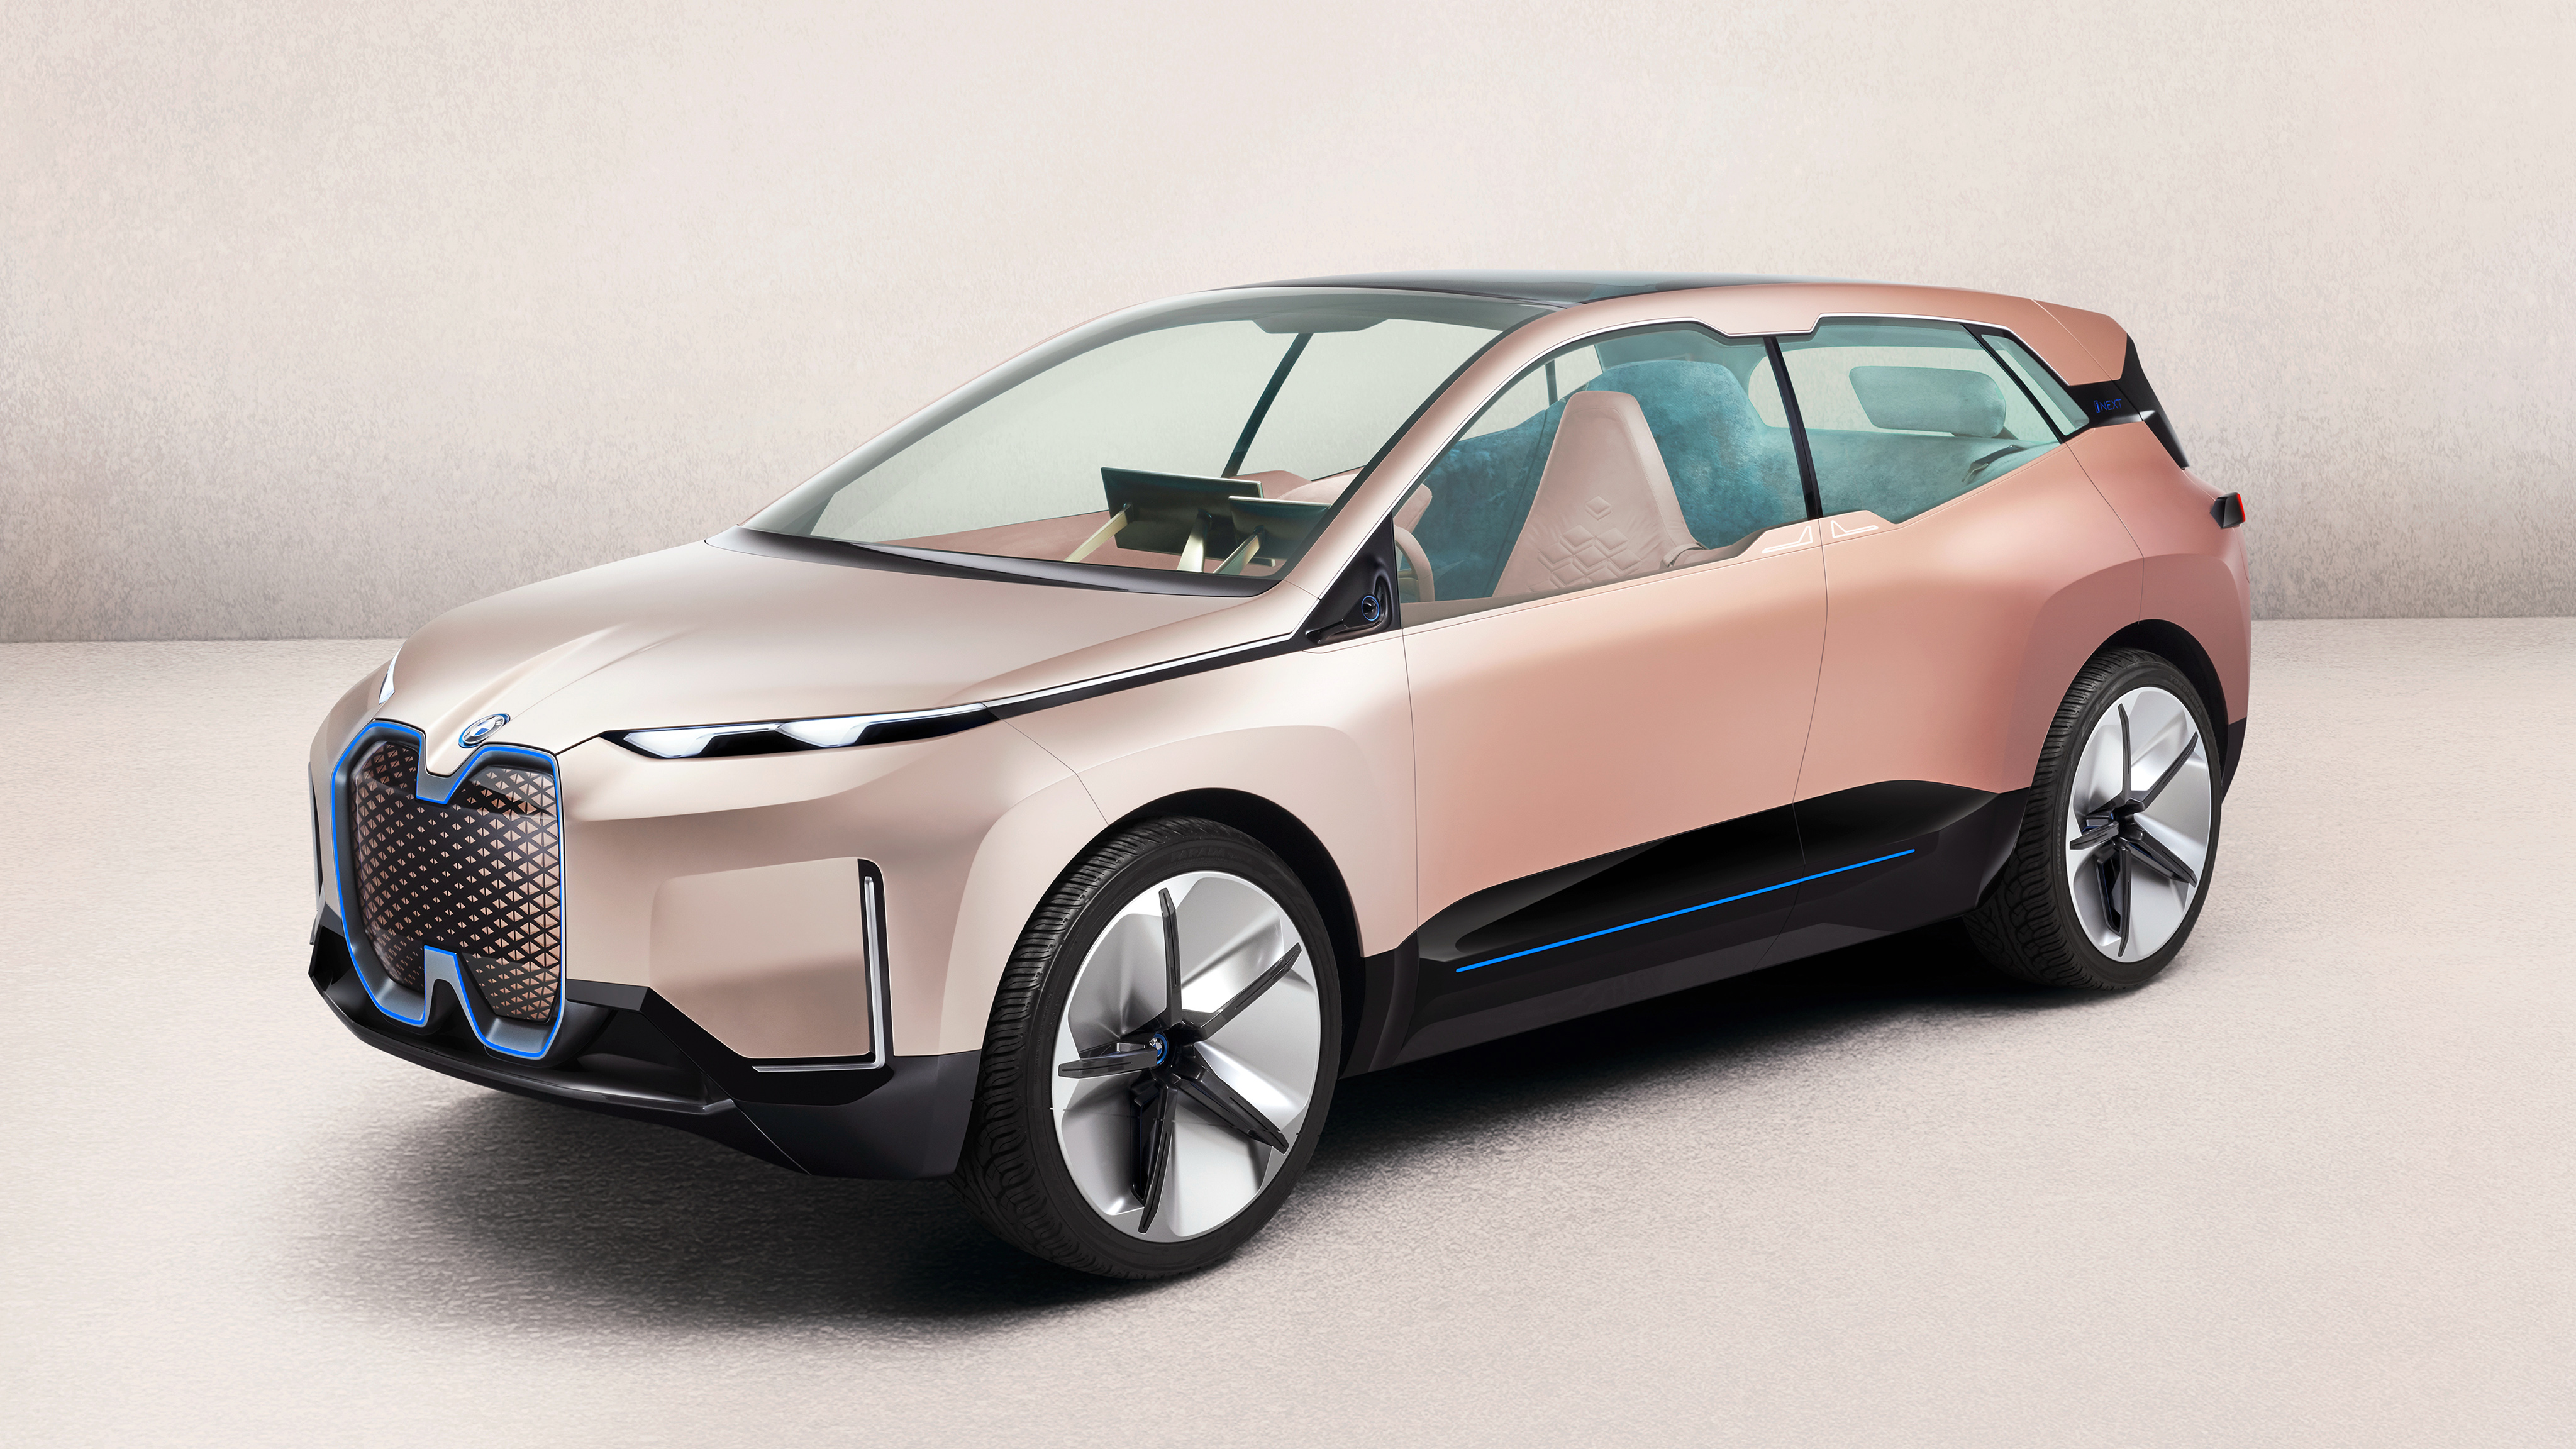 Bmw Vision Inext 2019 4k 2 Wallpaper Hd Car Wallpapers Id 11662